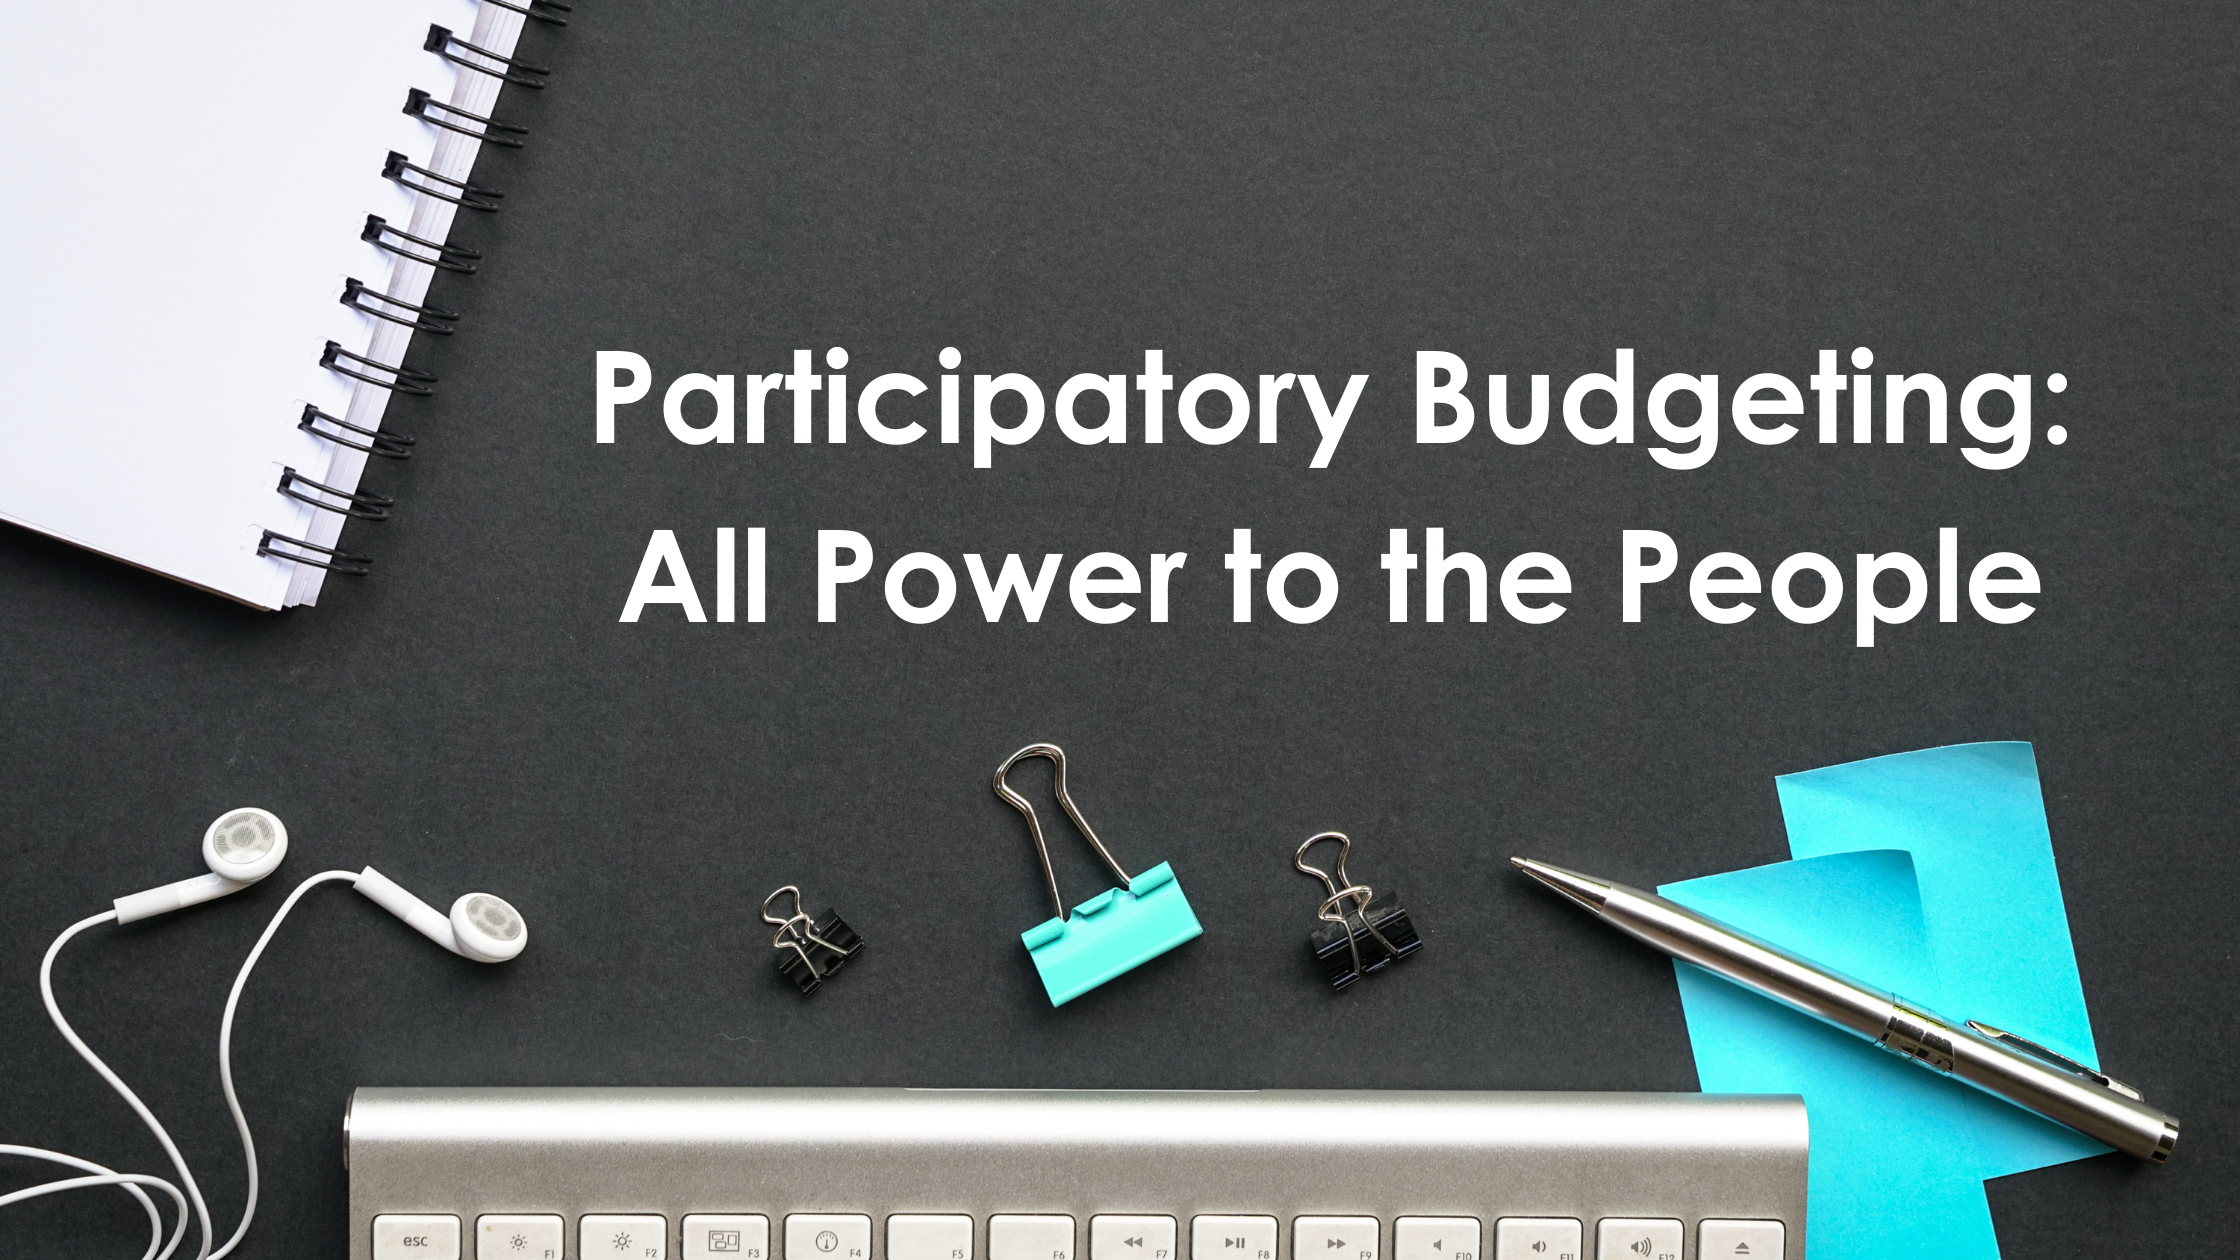 Participatory Budgeting All Power to the People